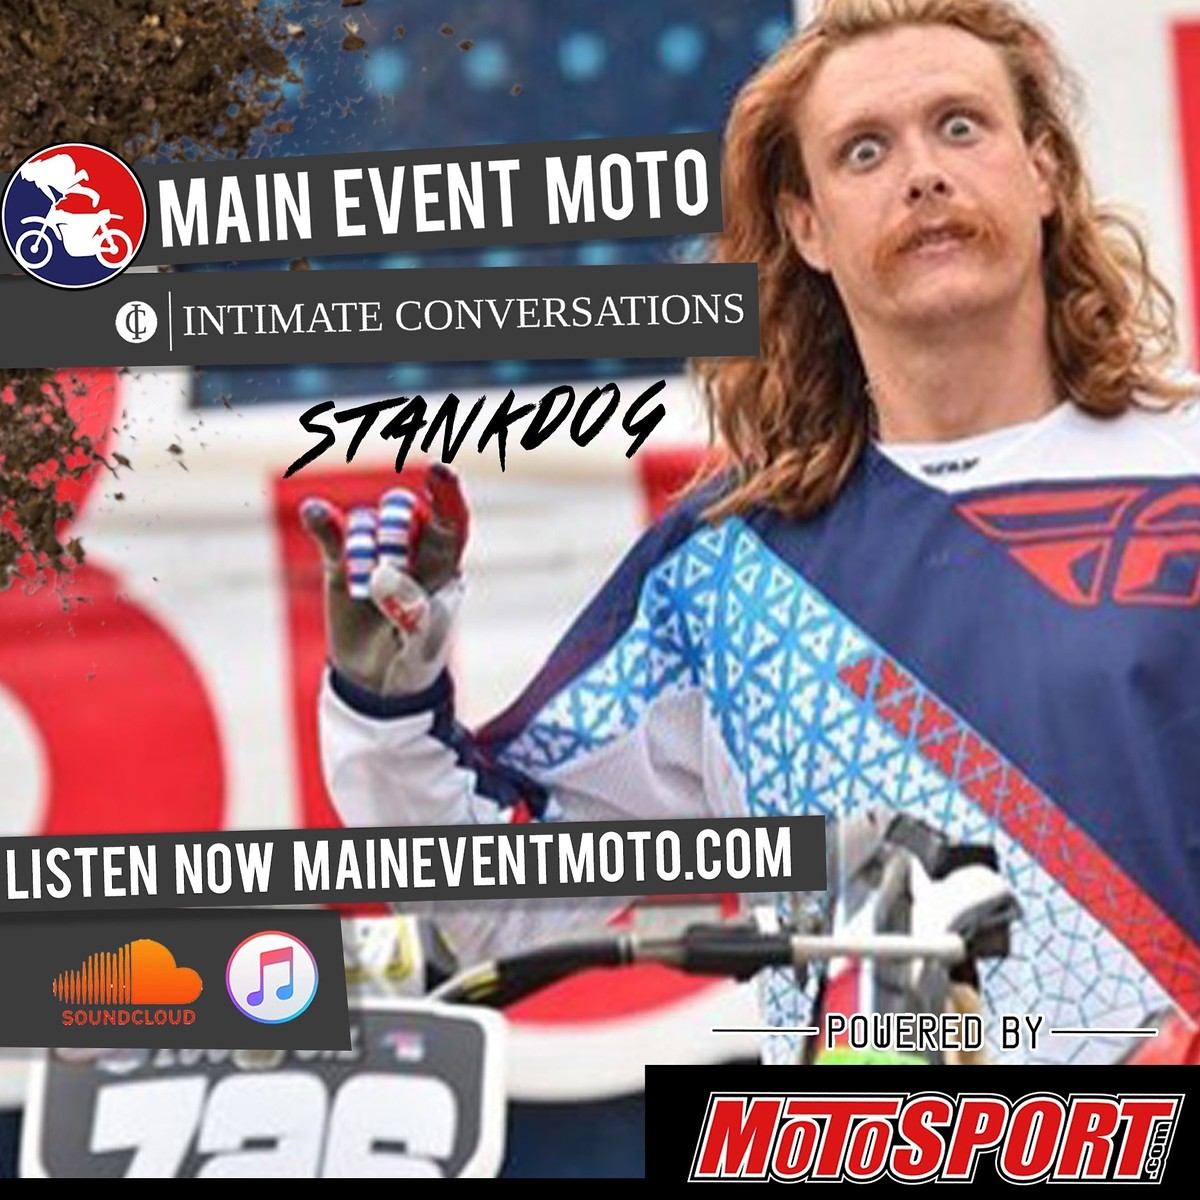 Podcast: Main Event Moto with Gared Steinke Interview